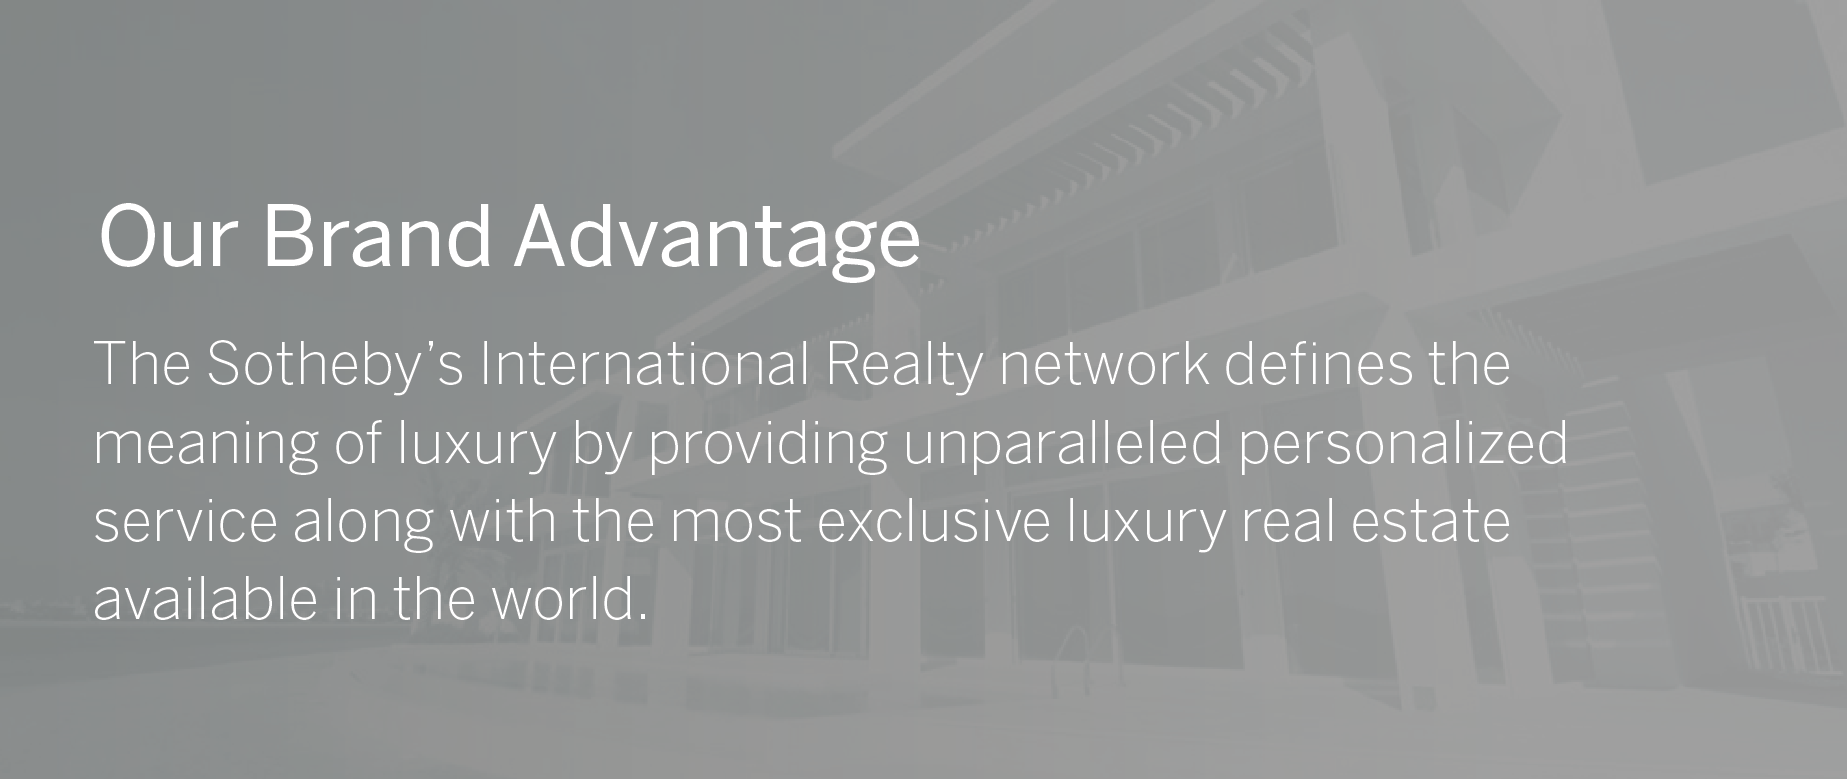 Our Brand Advantage - Our affiliation with Sotheby's International Realty gives us an overwhelming advantage in the ability to reach buyers not only right next door but also all over the world. This relationship provides us access to the #1 luxury real estate website (sothebysrealty.com), and the #1 real estate YouTube channel in the world. We also have exclusive relationships with the Wall Street Journal, Mansion Global, and more. Amanda Howard Sotheby's International Realty provides a local and global marketing reach that is simply unrivaled.